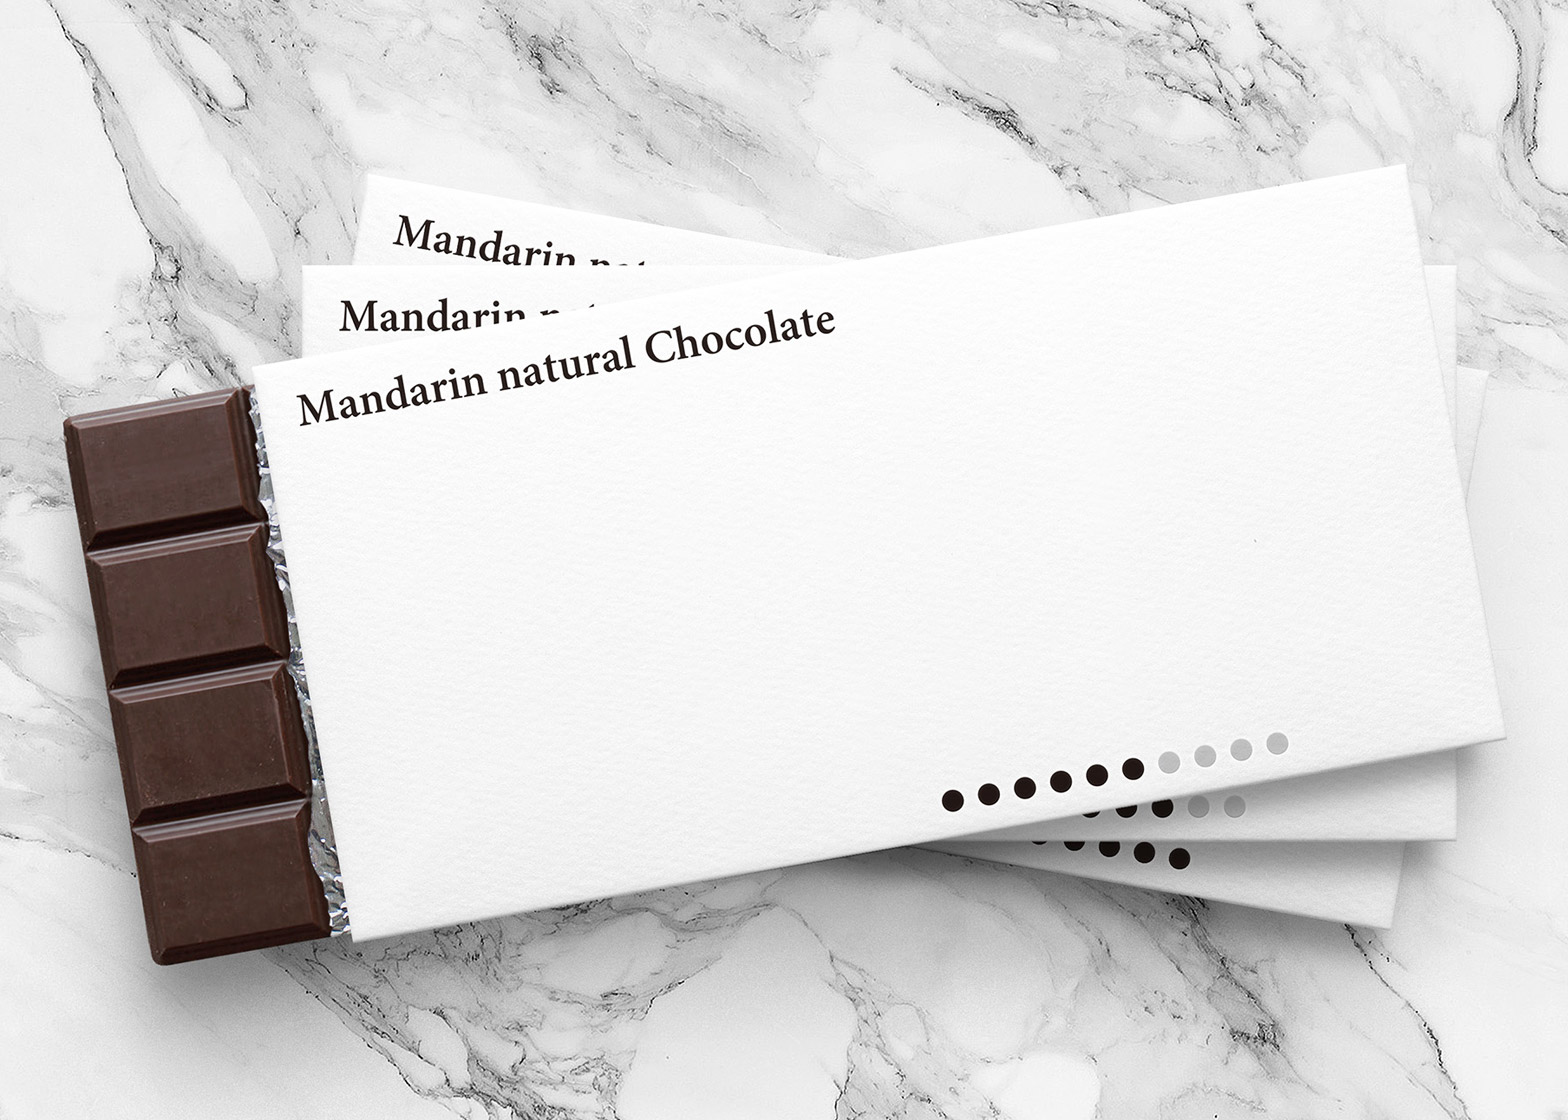 mandarin-natural-chocolate-yuta-takahashi-branding-packaging-design_dezeen_1568_14